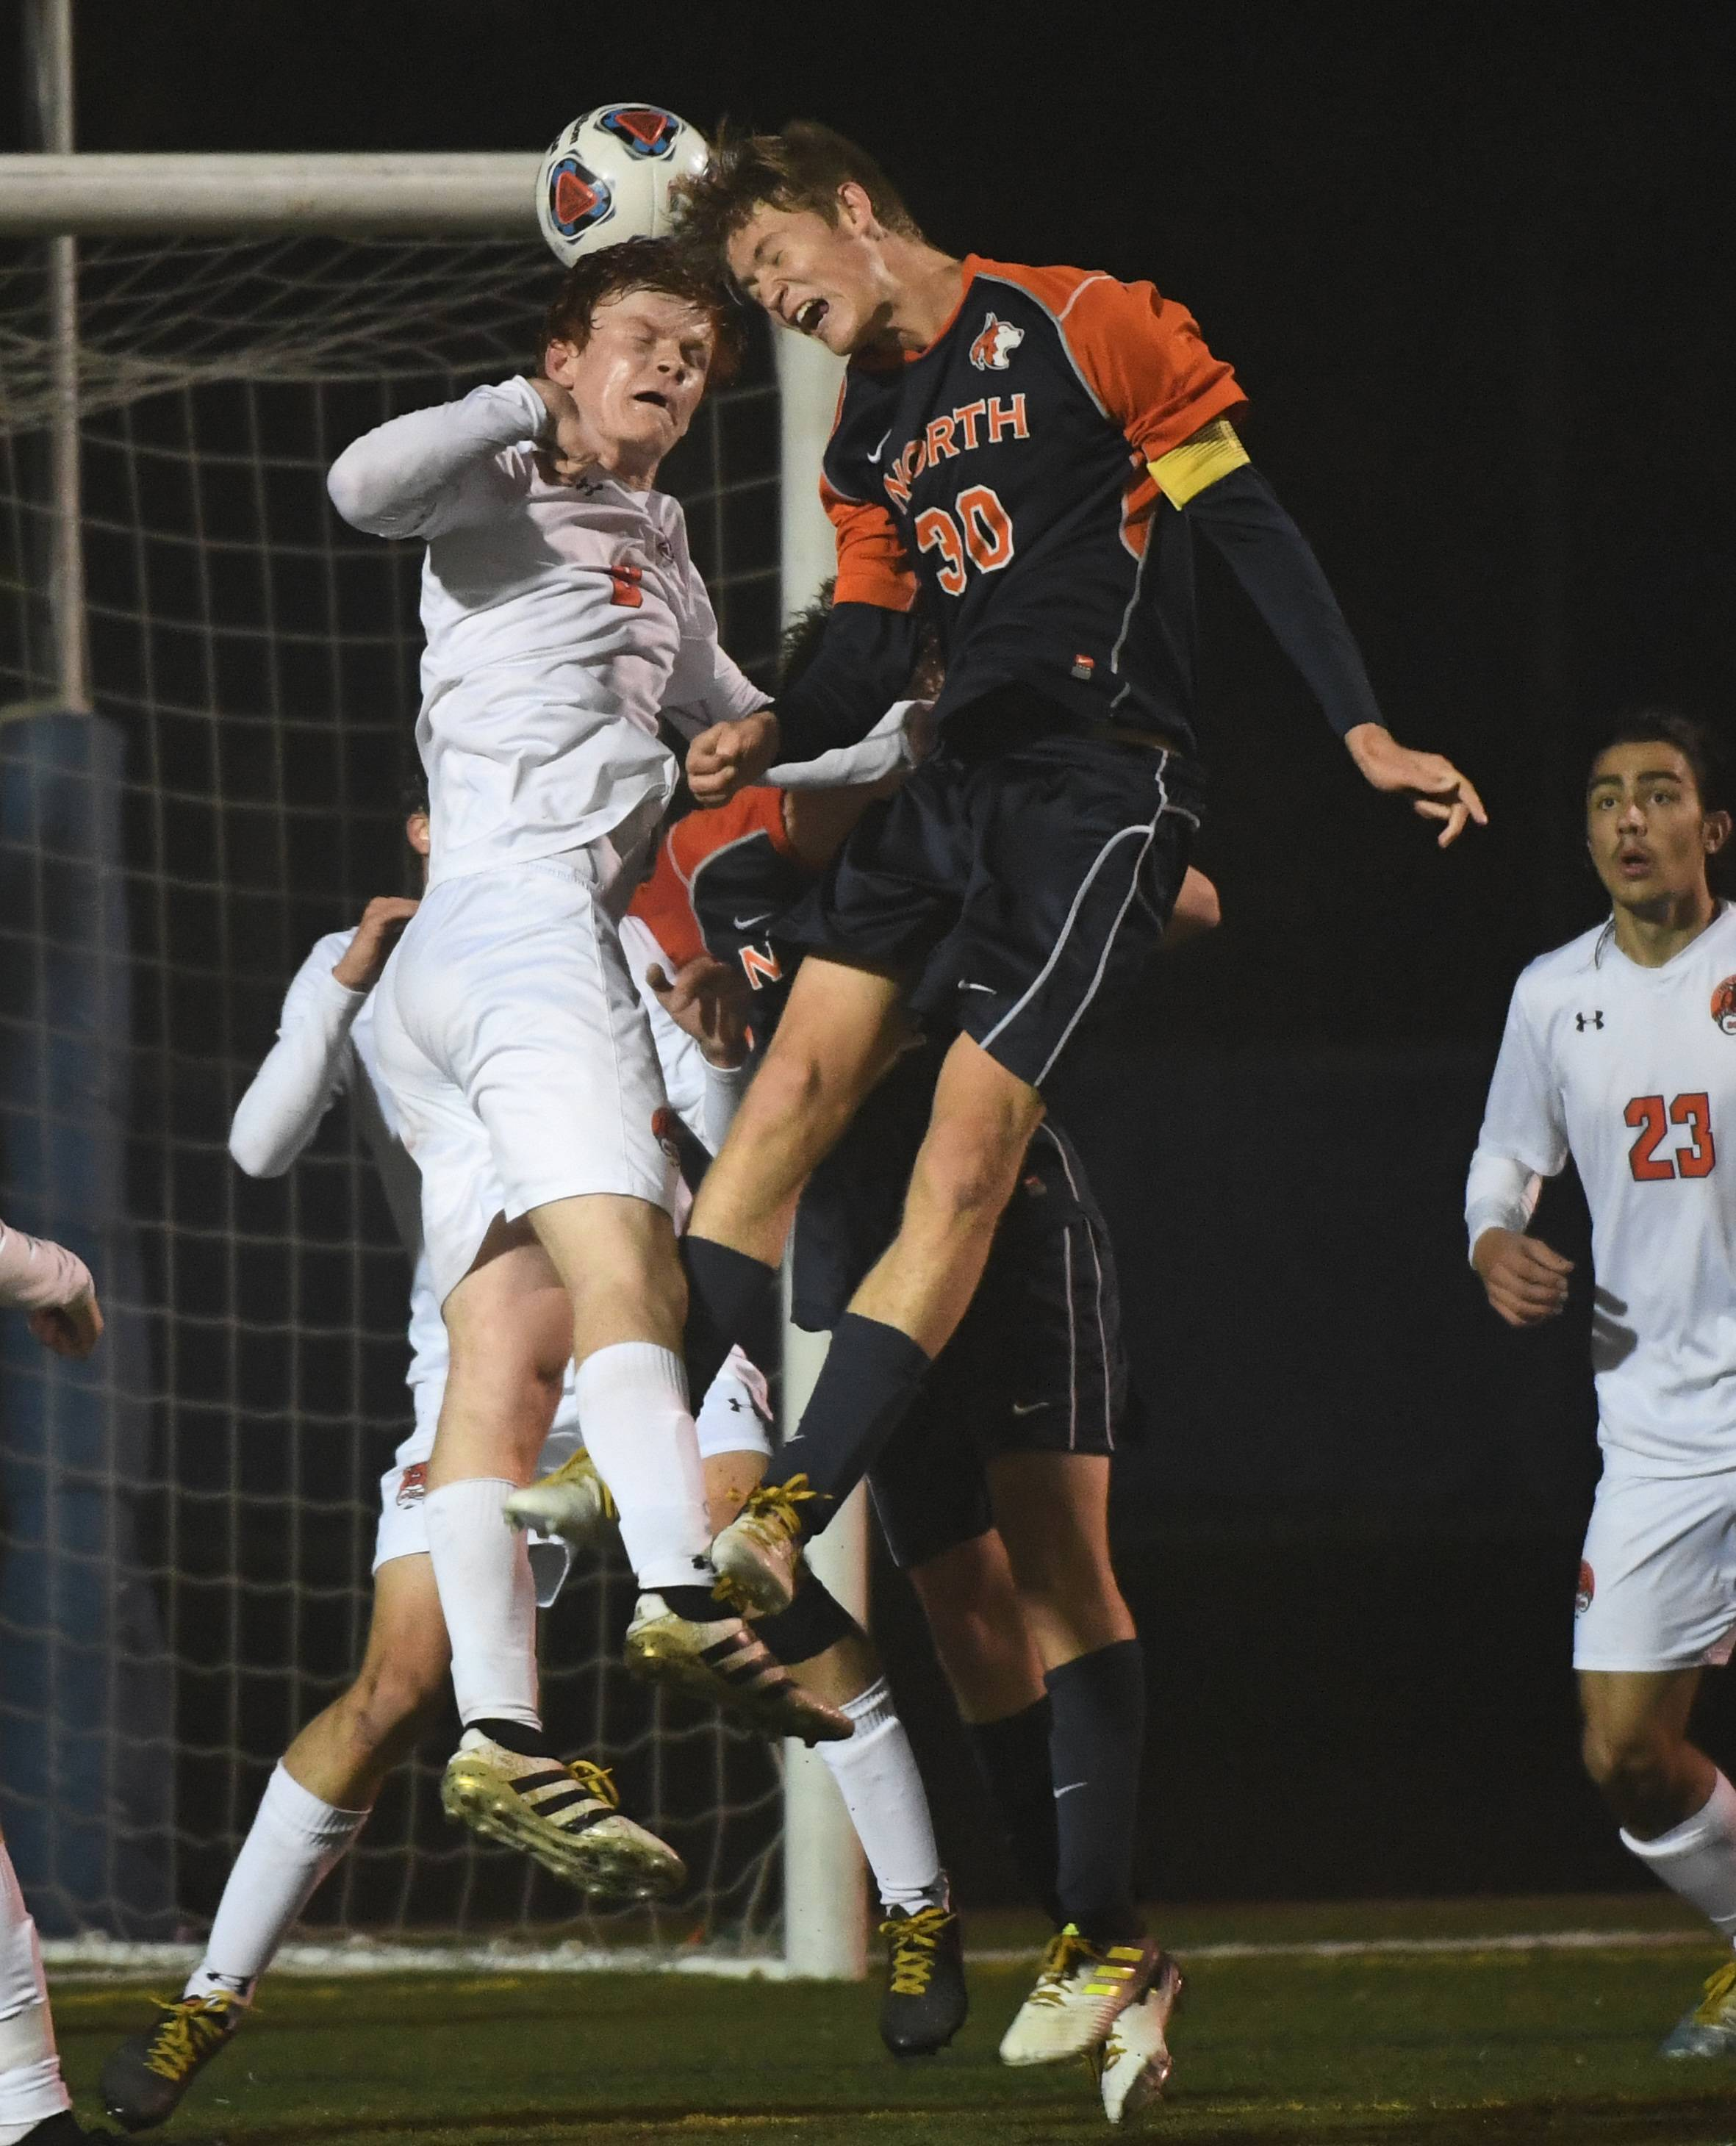 Naperville North's Colin Iverson heads the ball into the goal with Libertyville's Evan Rasmussen defending for the only score in Saturday's Class 3A state championship game at Hoffman Estates.